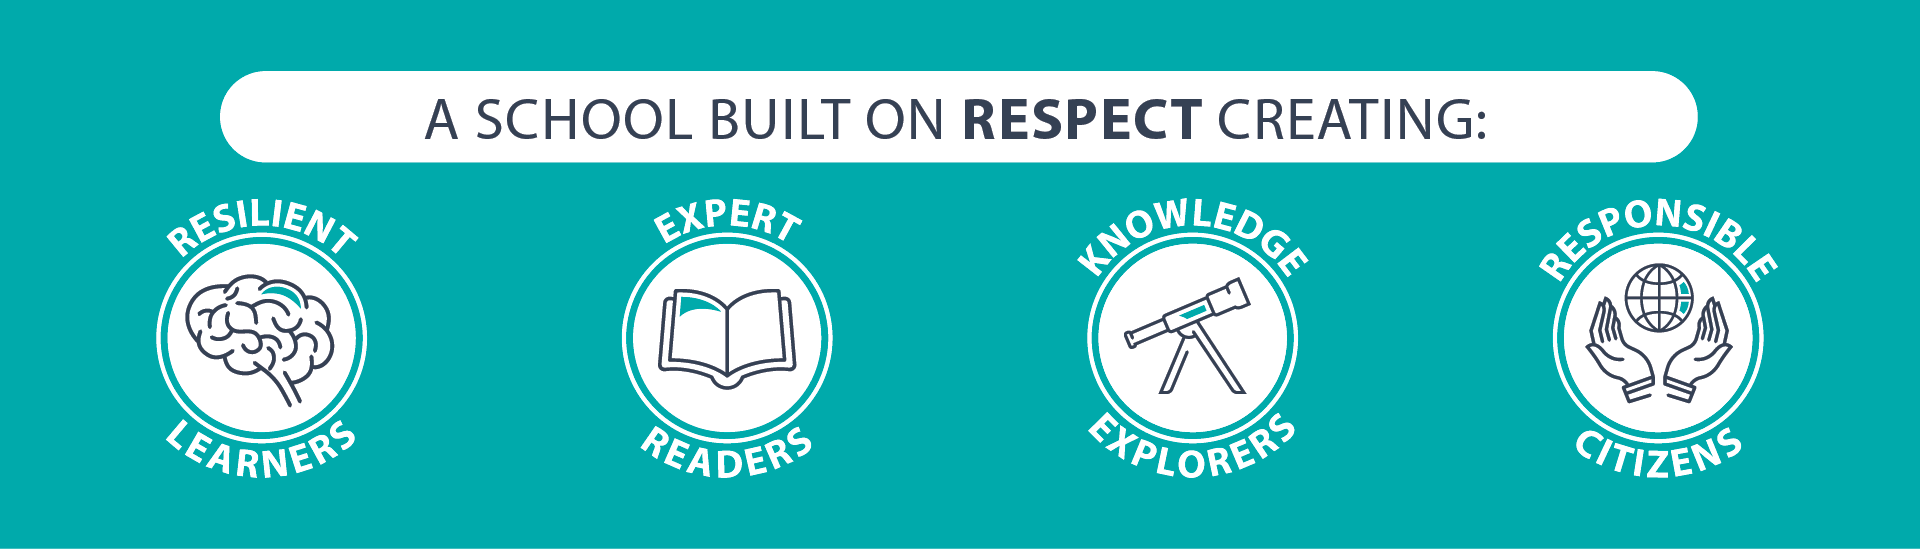 A school built on RESPECT creating: resilient learners, expert readers, knowledge explorers and responsible citizens